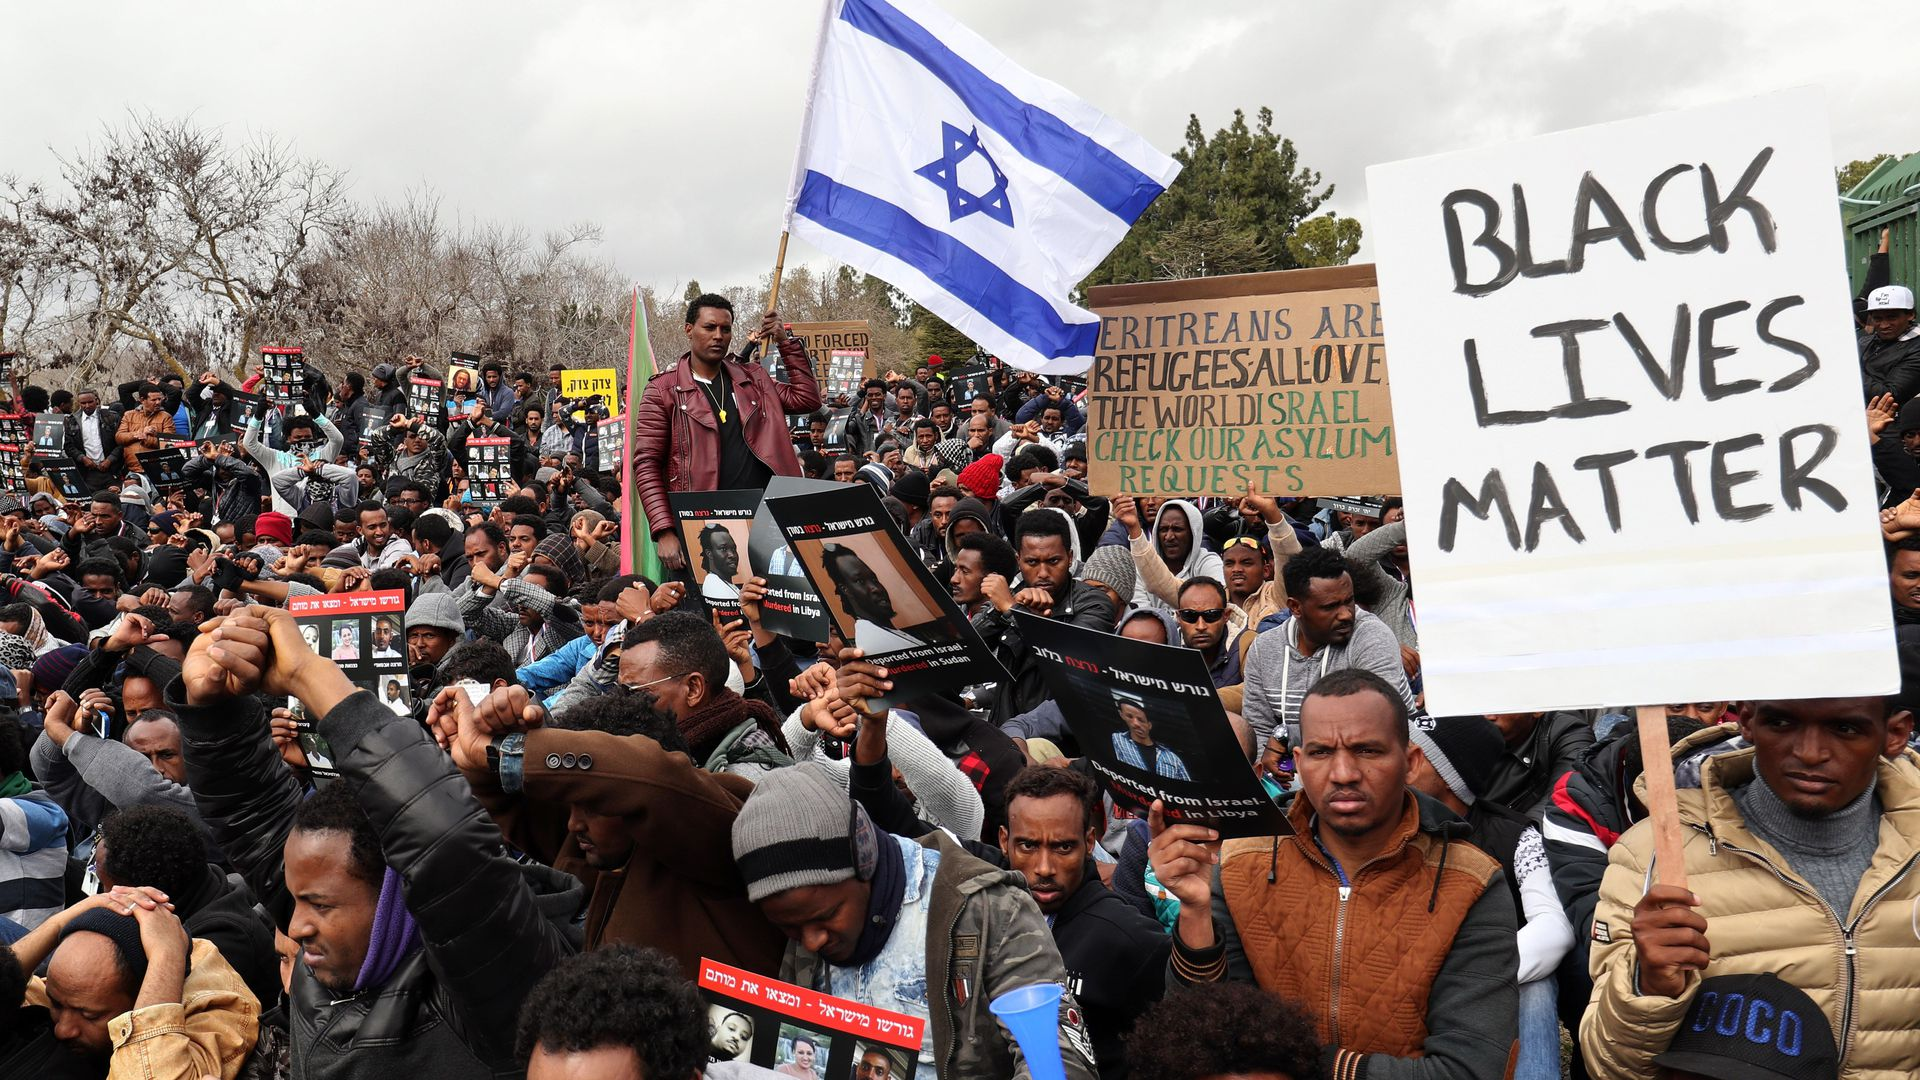 Israel suspends resettlement deal with un on african migrants axios israel suspends resettlement deal with un on african migrants stopboris Image collections